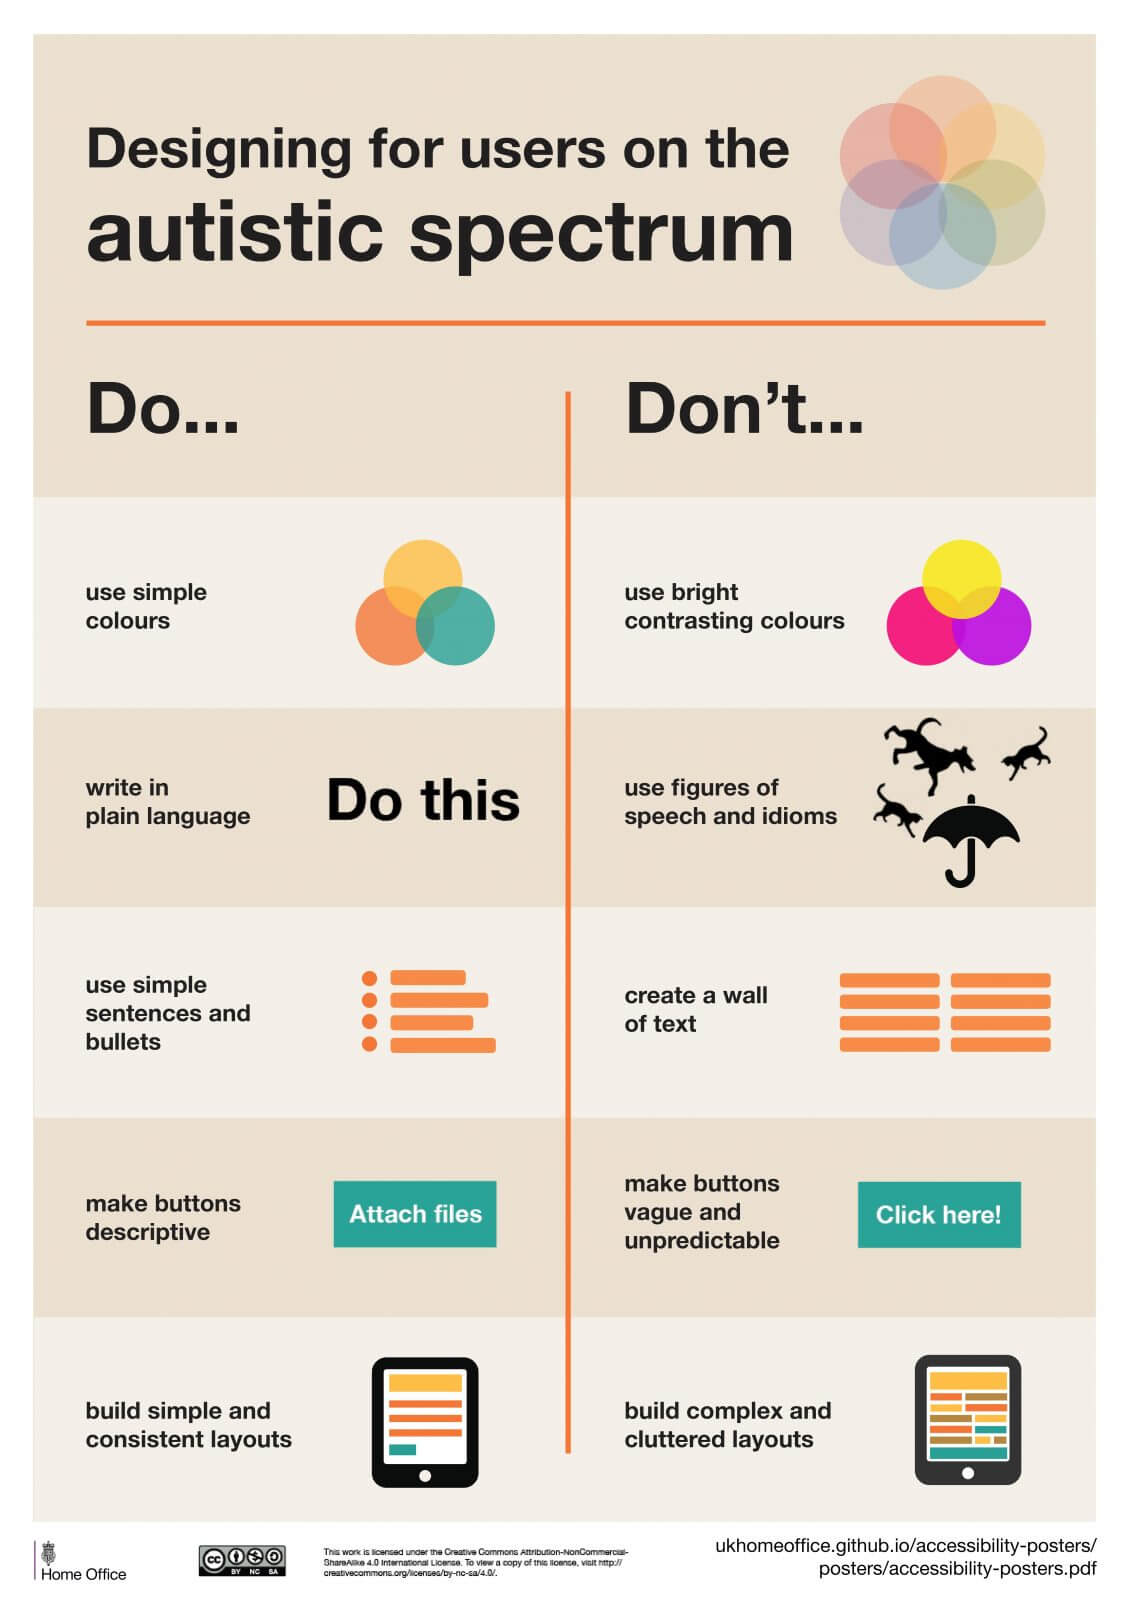 GOV.UK Designing For Users On The Autistic Spectrum